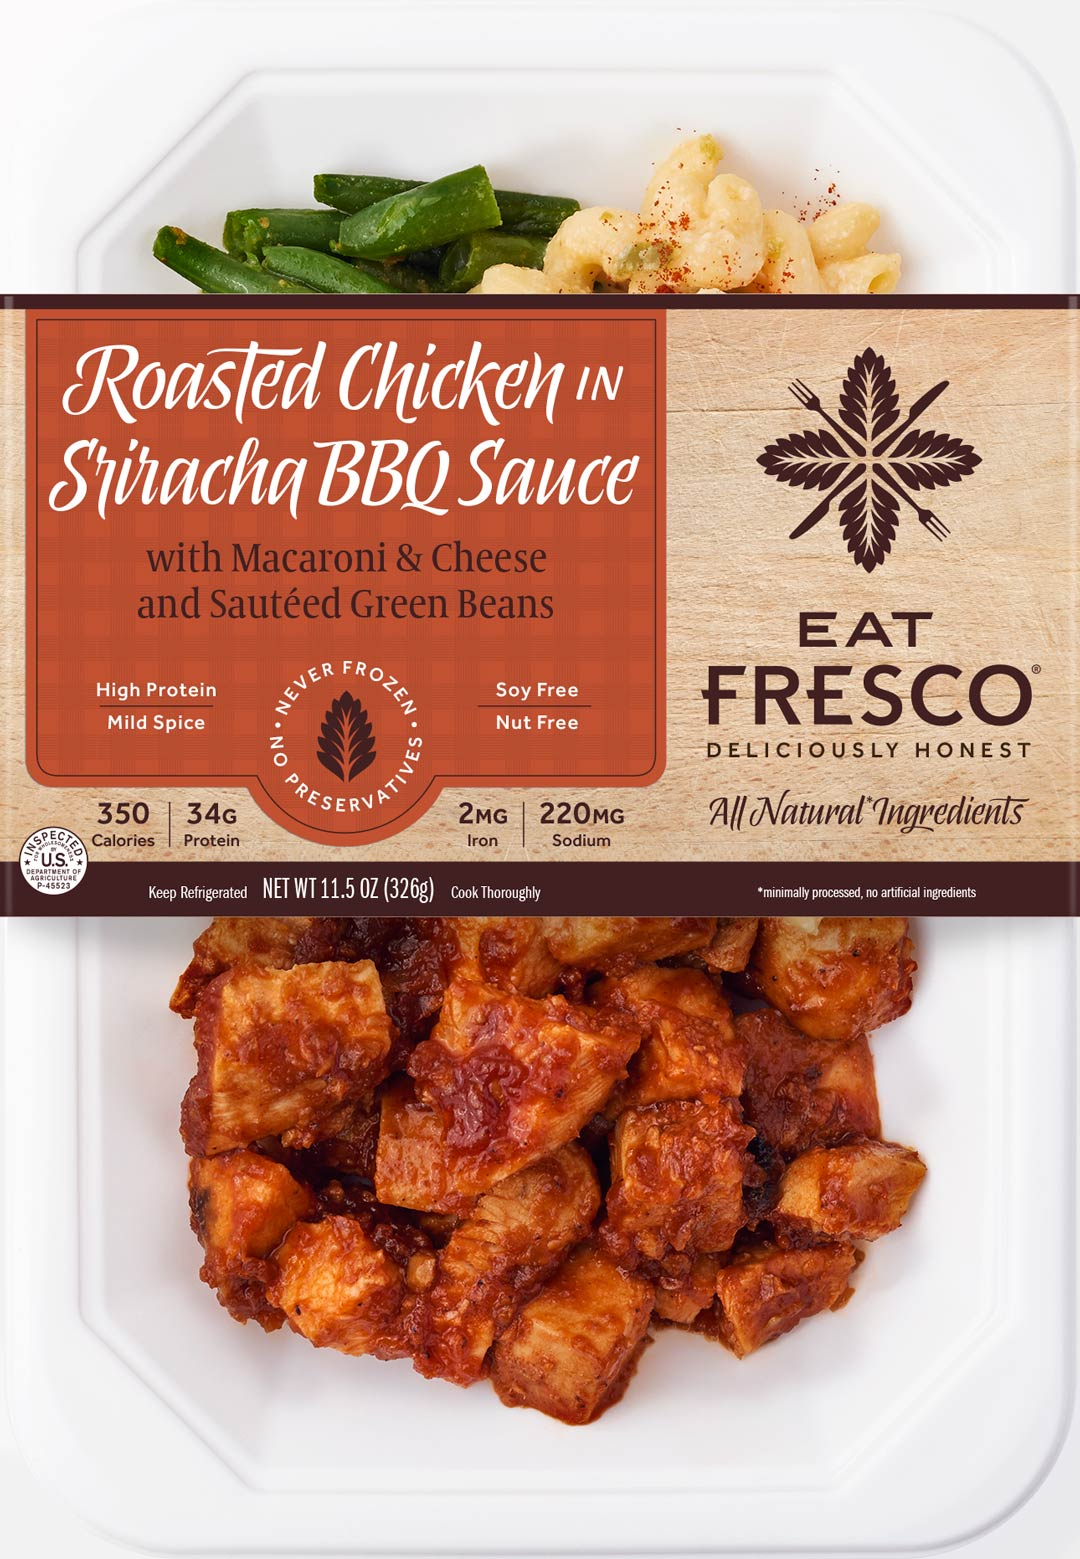 Eat Fresco - Entree - Dinner - Roasted Chicken in Sriracha BBQ Sauce